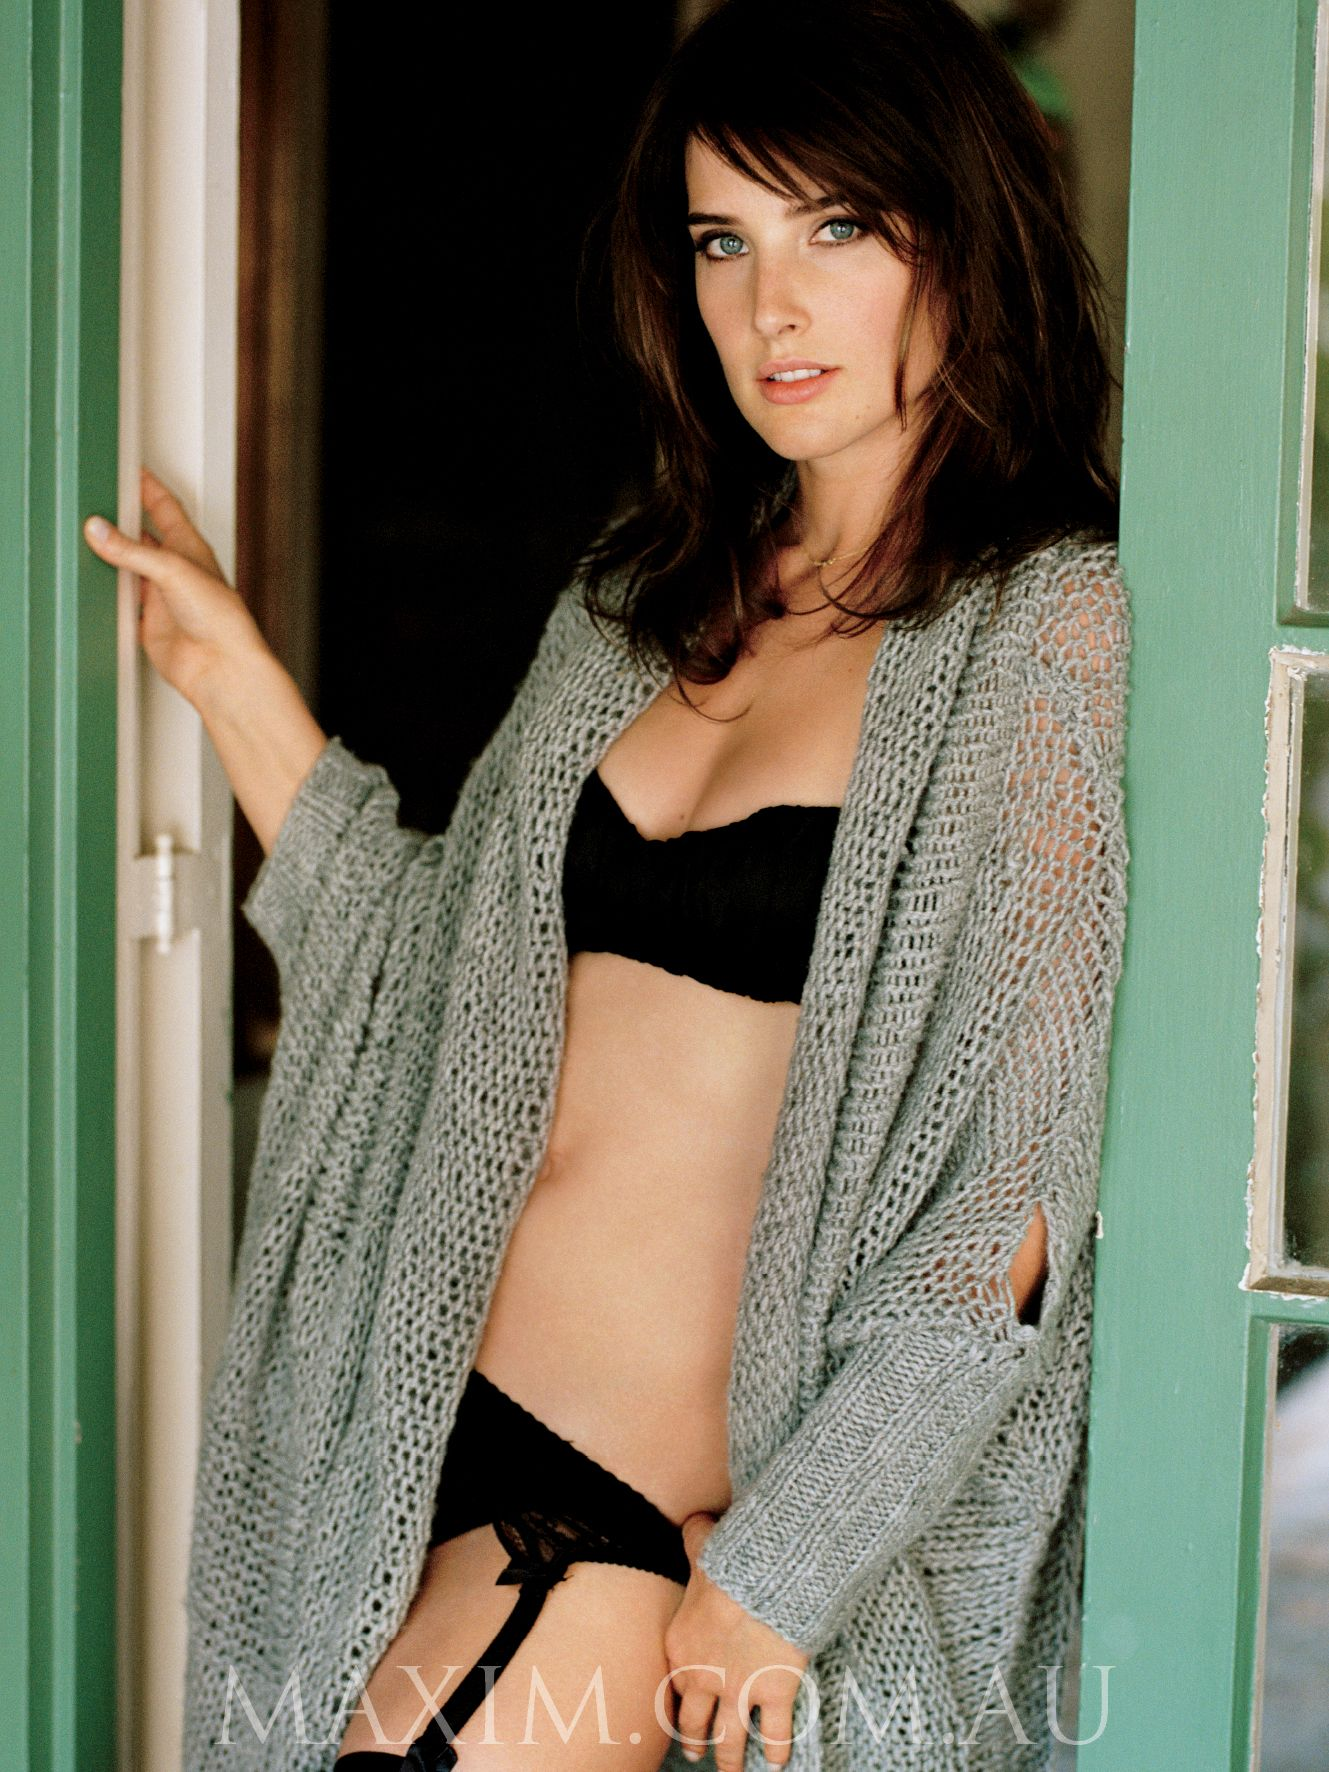 Sexy Cobie Smulders naked (78 photo), Sexy, Sideboobs, Boobs, braless 2015